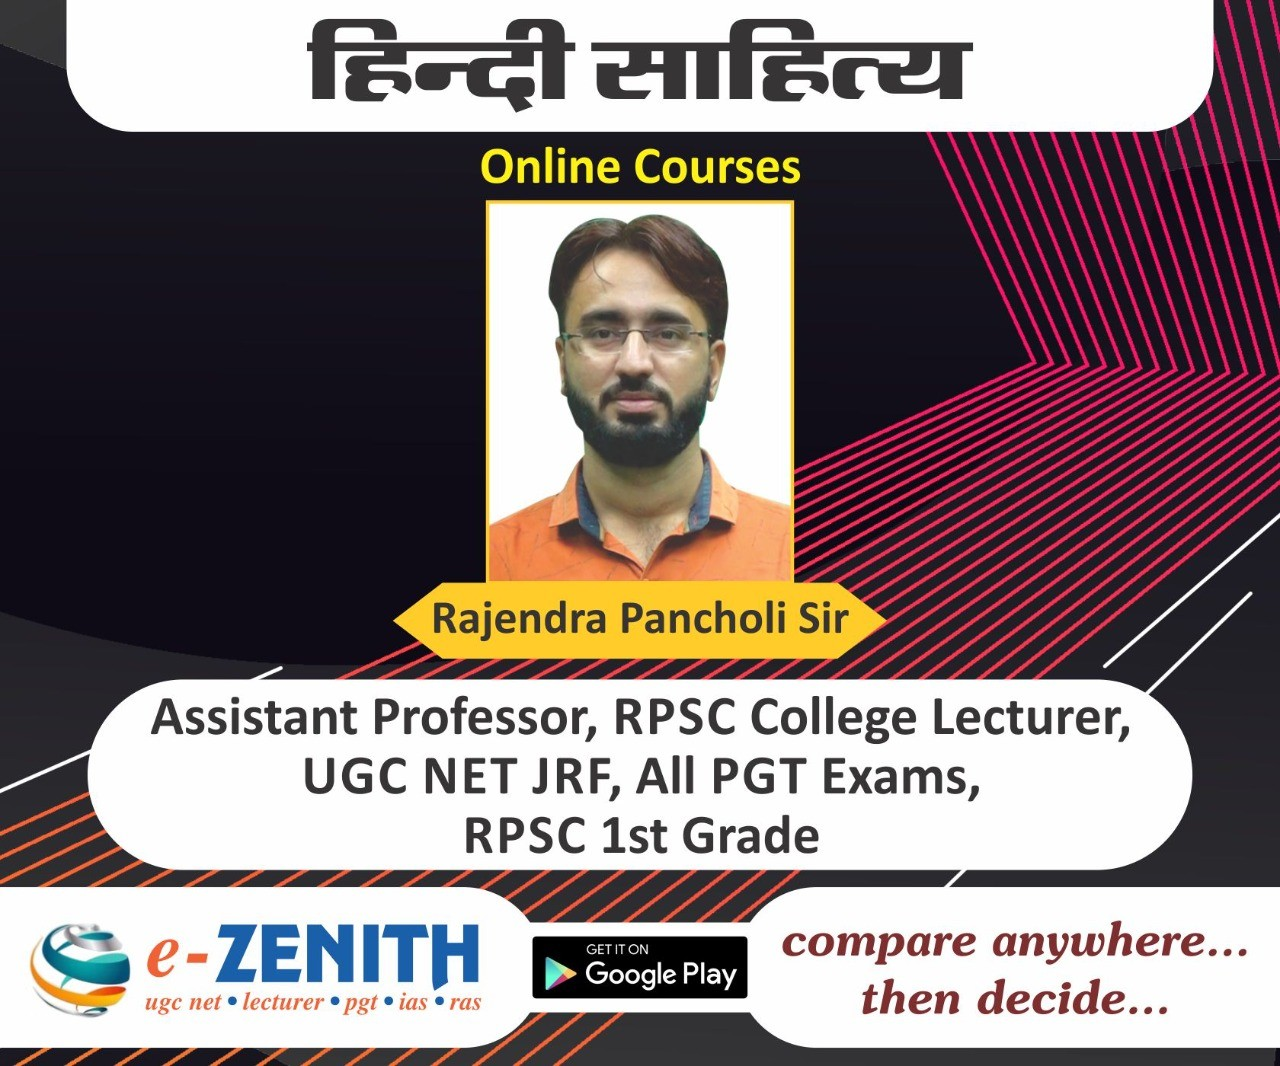 RPSC COLLEGE LECTURER, UGC NET, PGT, 1st GRADE HINDI LITERATURE ONLINE COURSE